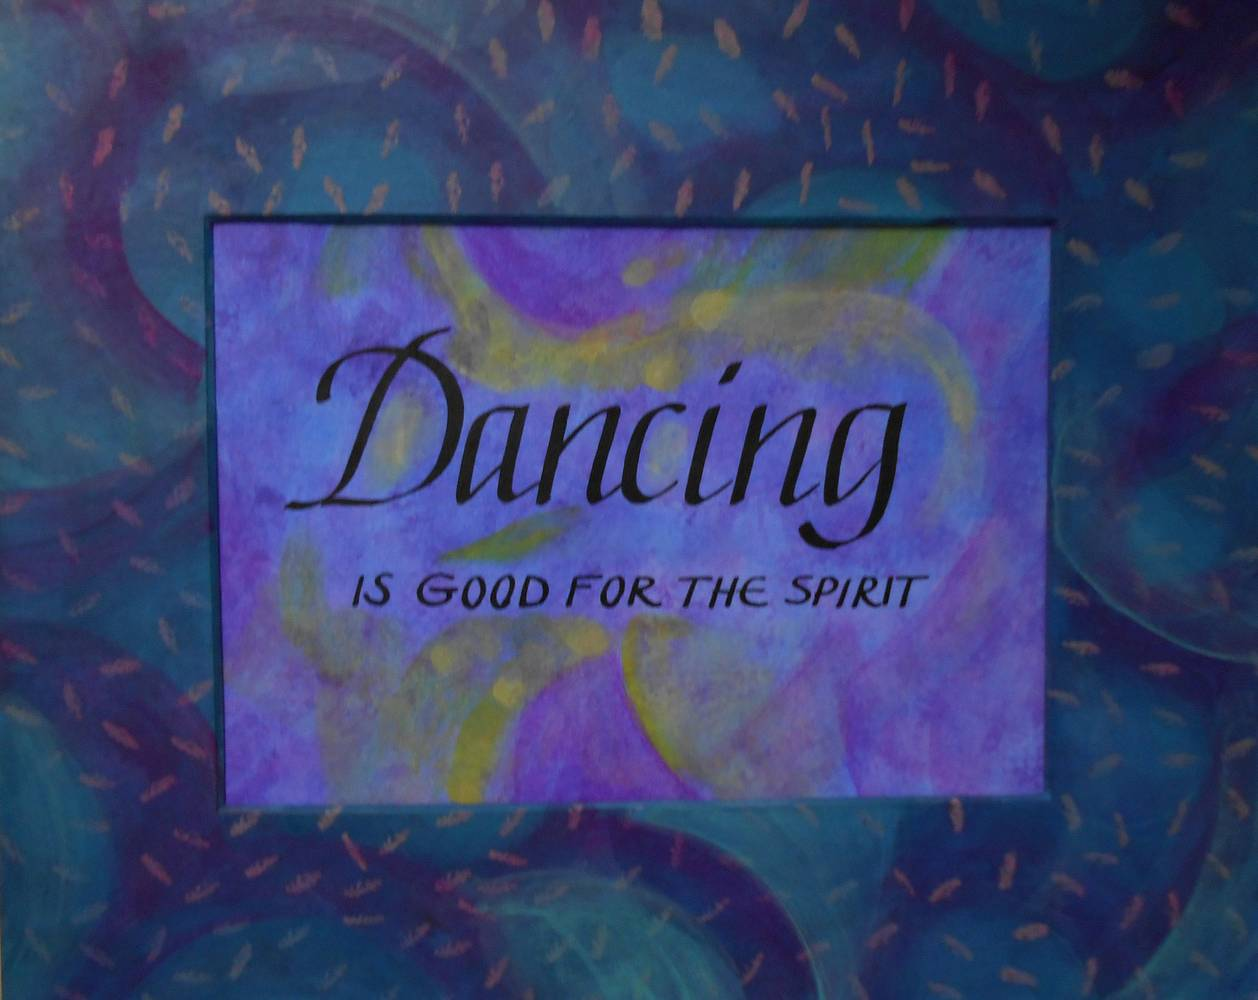 Painting DANCING by Georgette  Jones